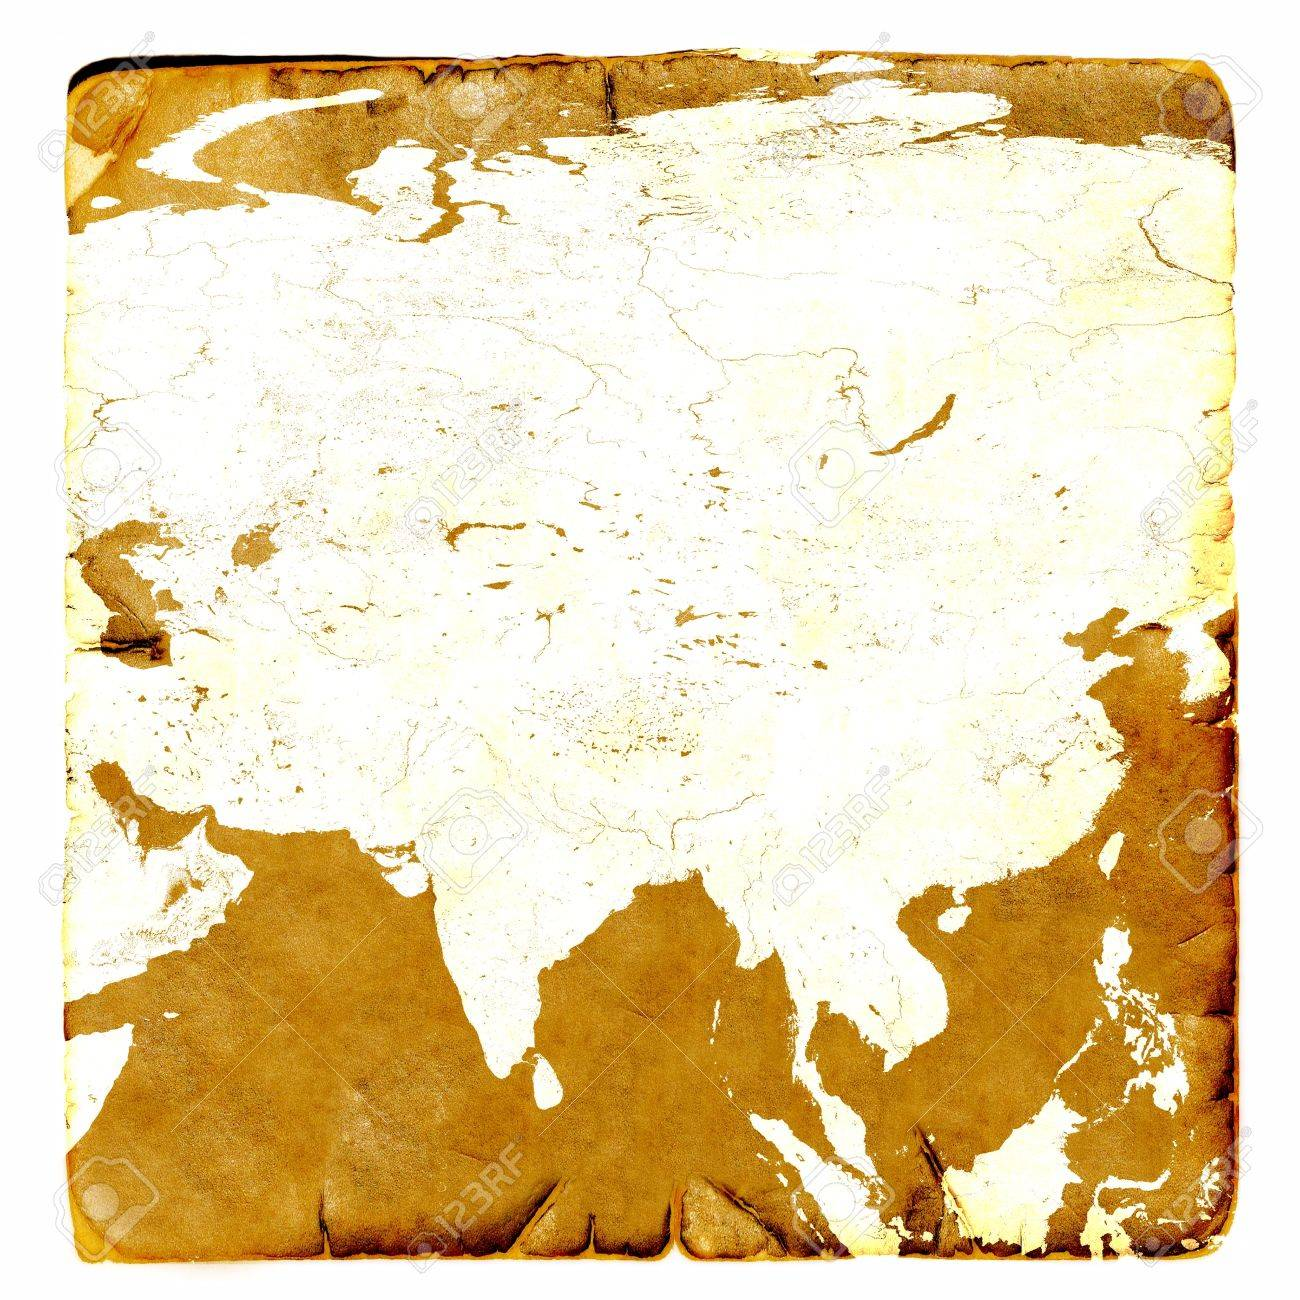 Map Of Asia Continent Blank In Old Style Russia China India